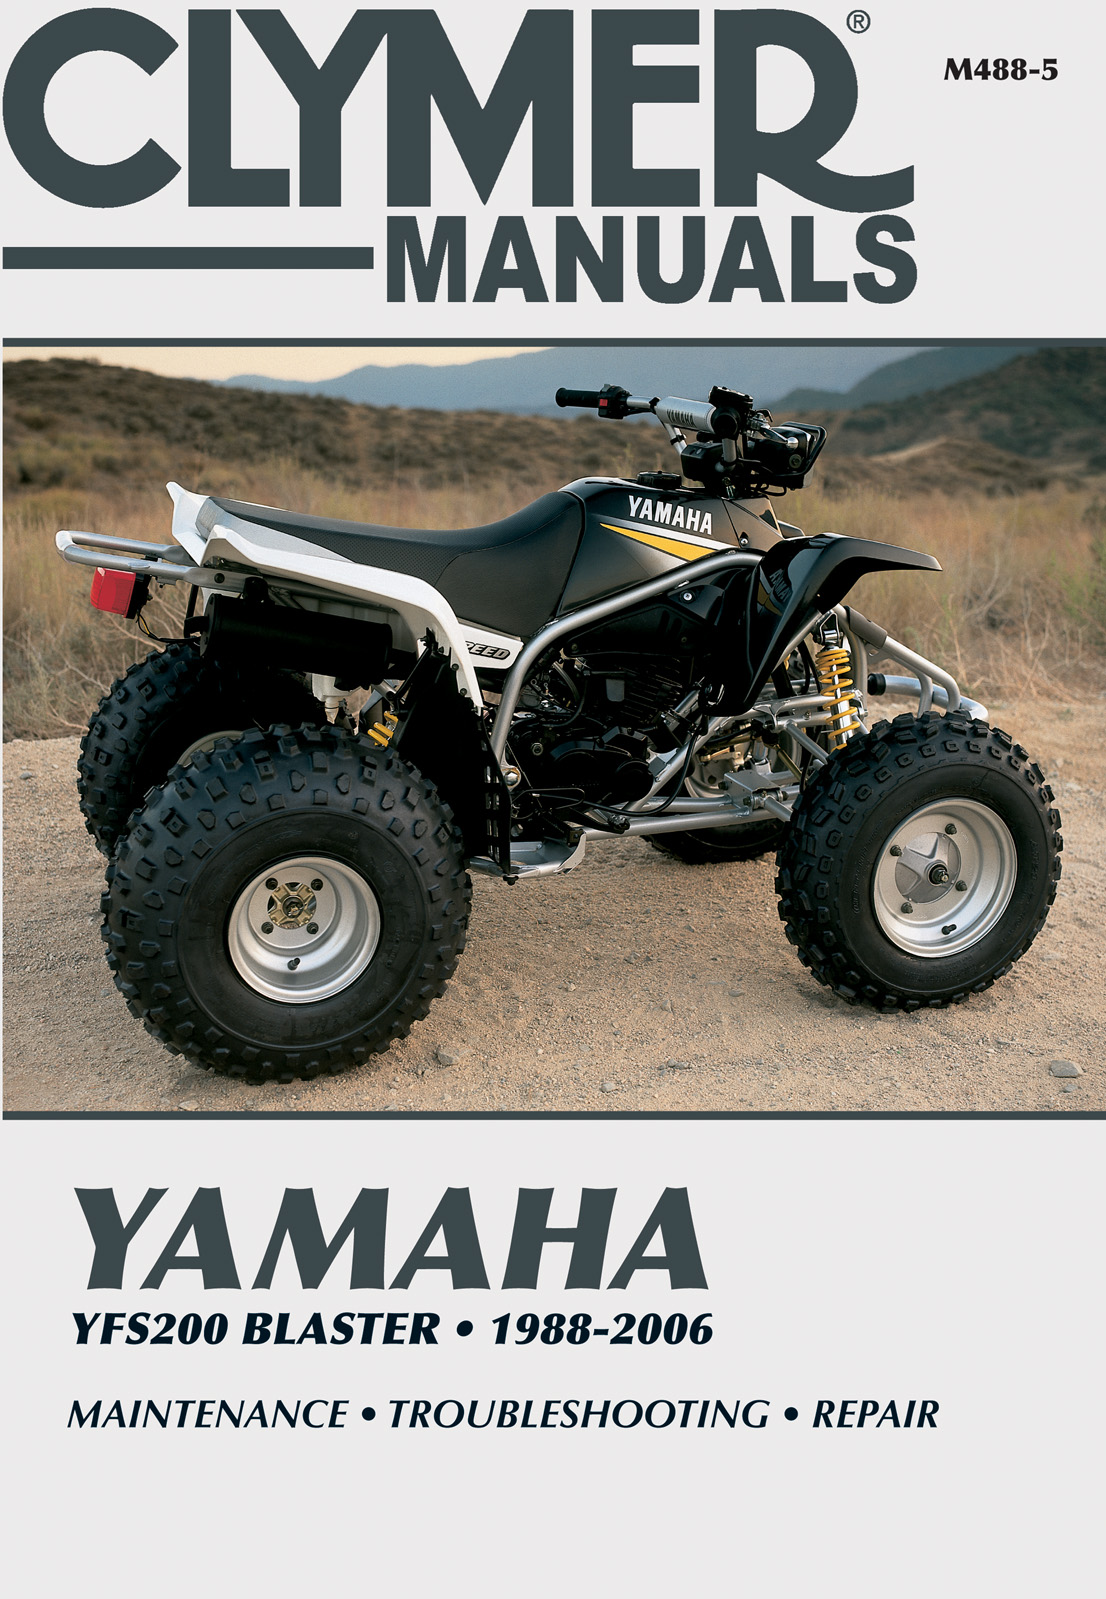 Yamaha_YFS200_Blaster_ATV_19882006_Service_Repair_Manual